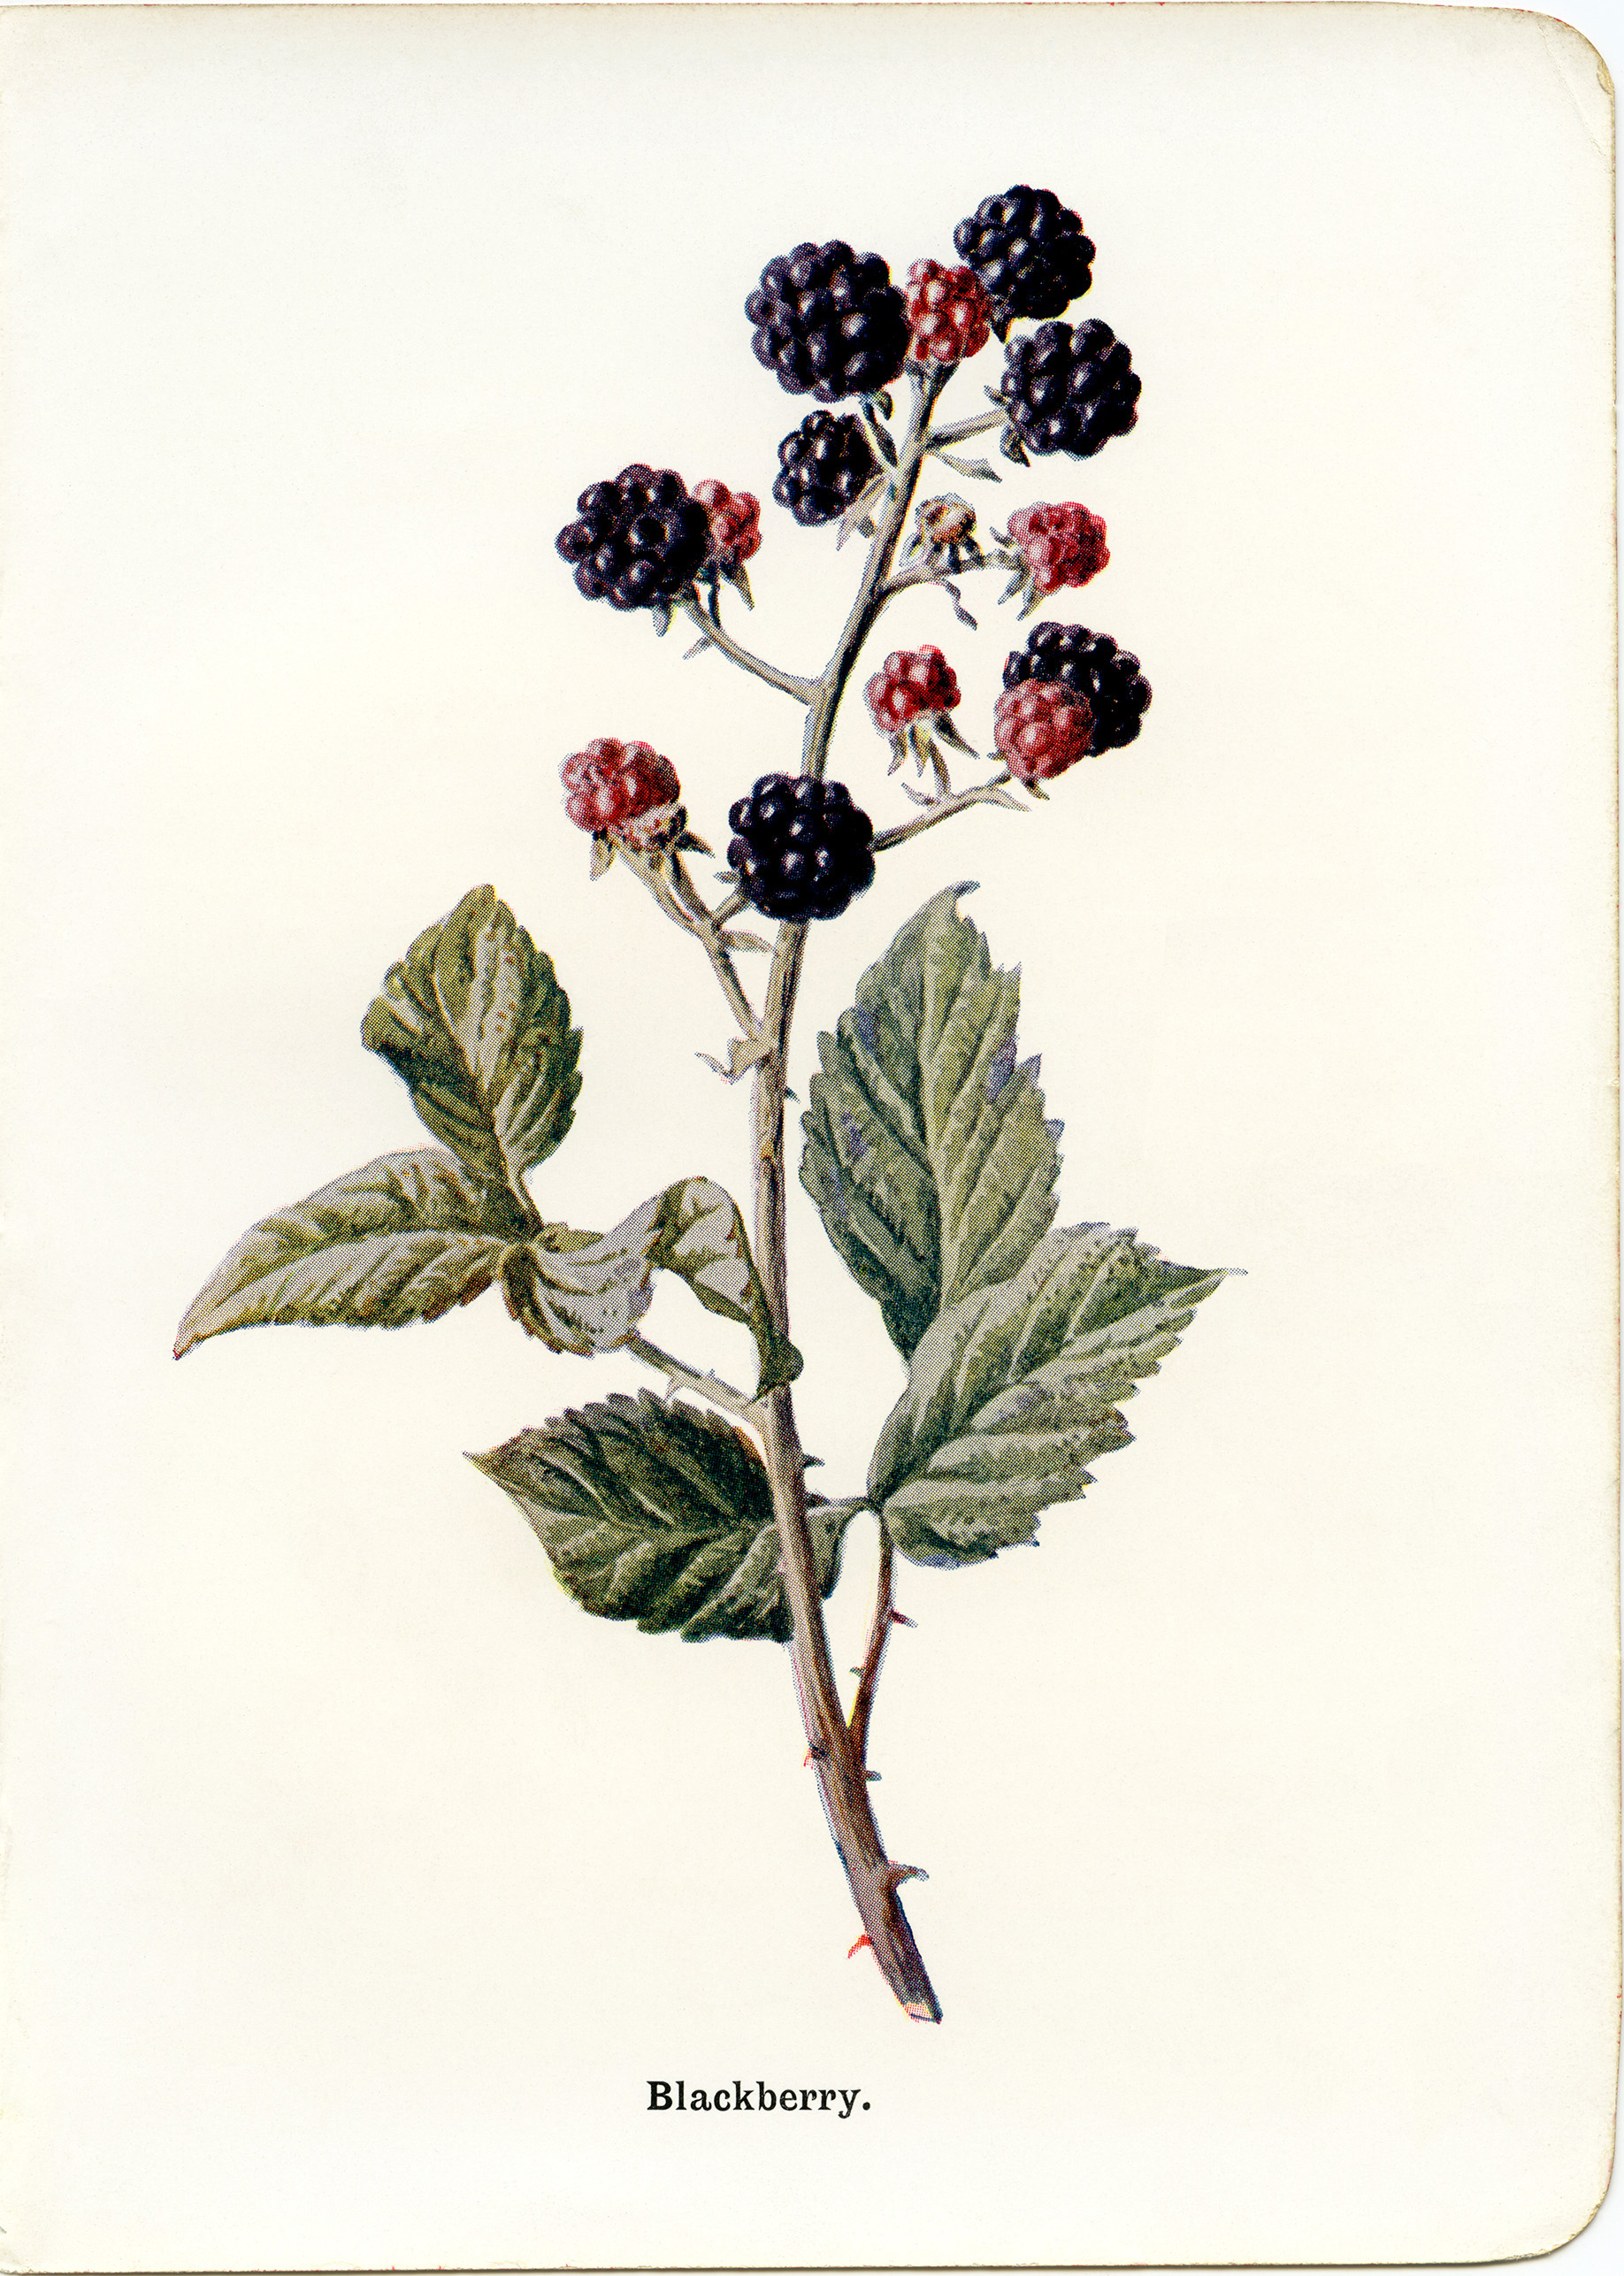 Blackberry Vintage Botanical Illustration - Old Design Shop Blog